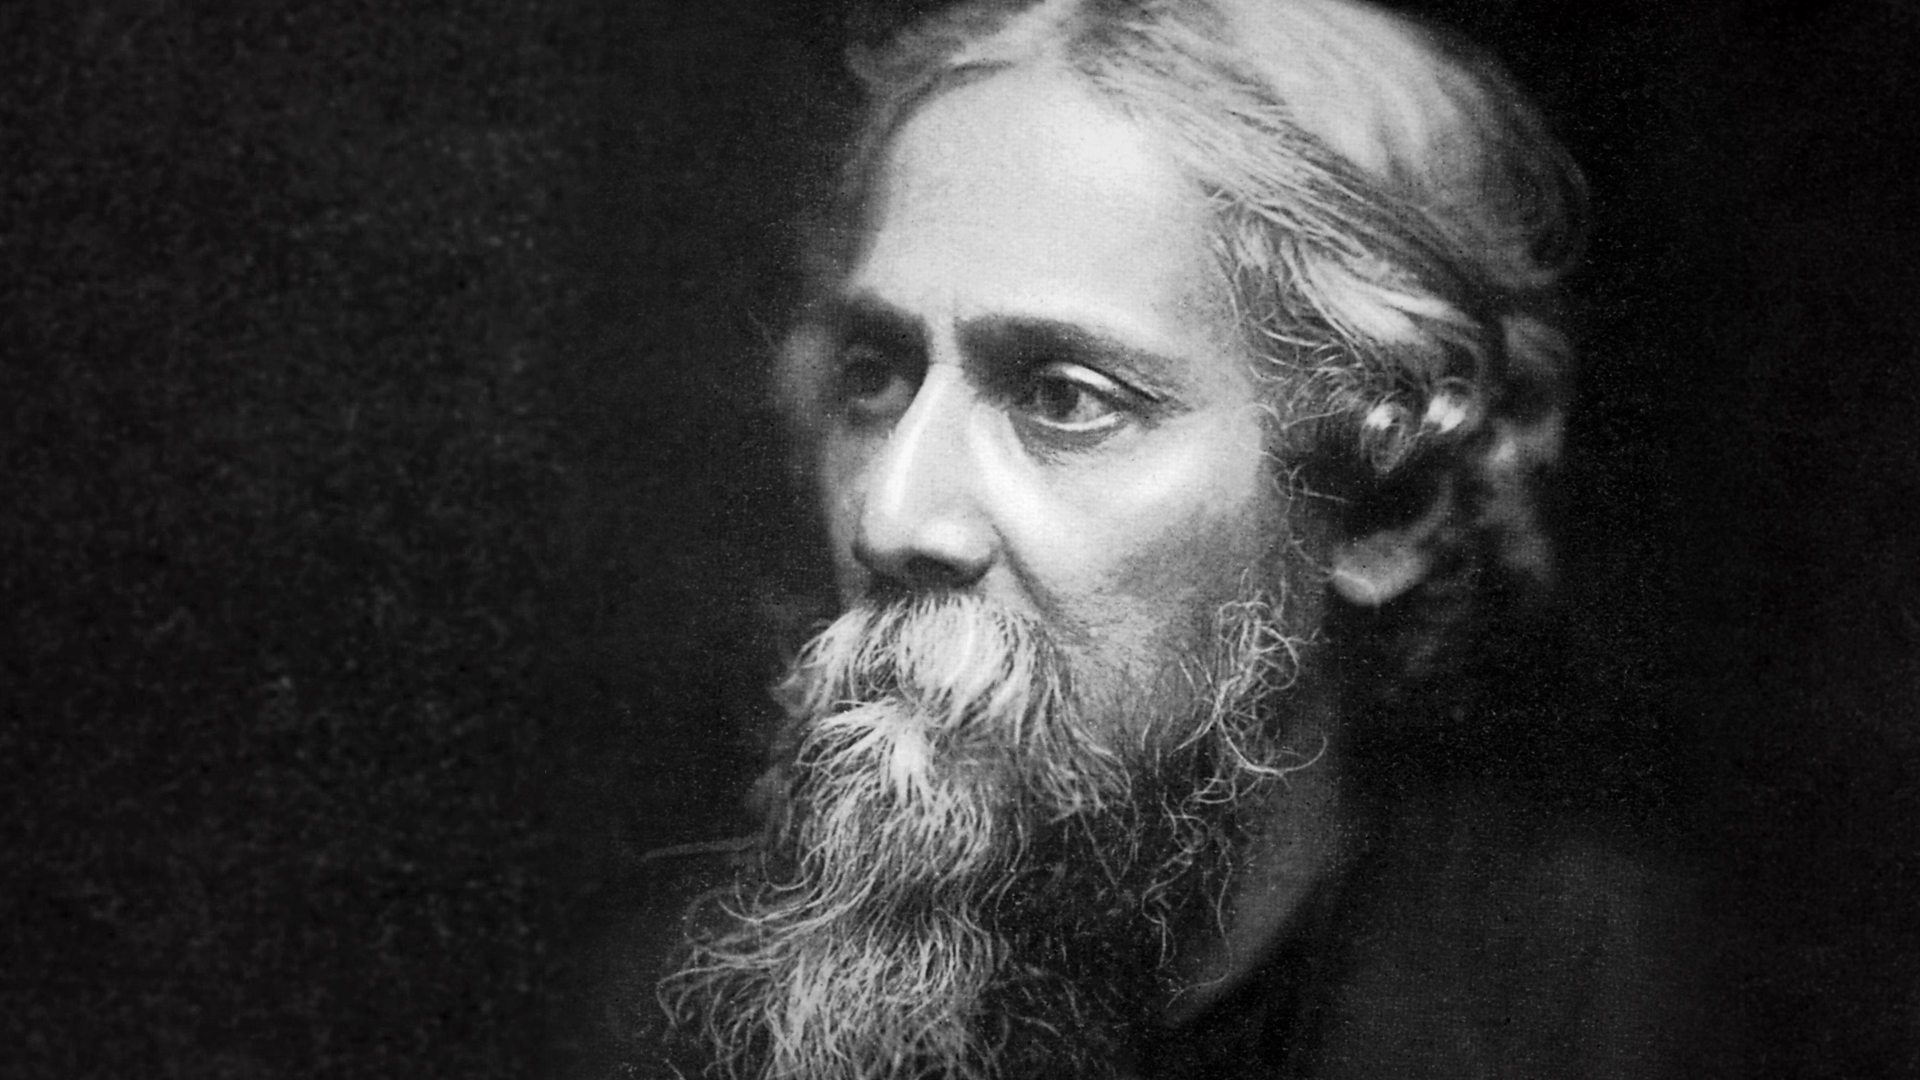 The bengali poet Rabindranath Tagore